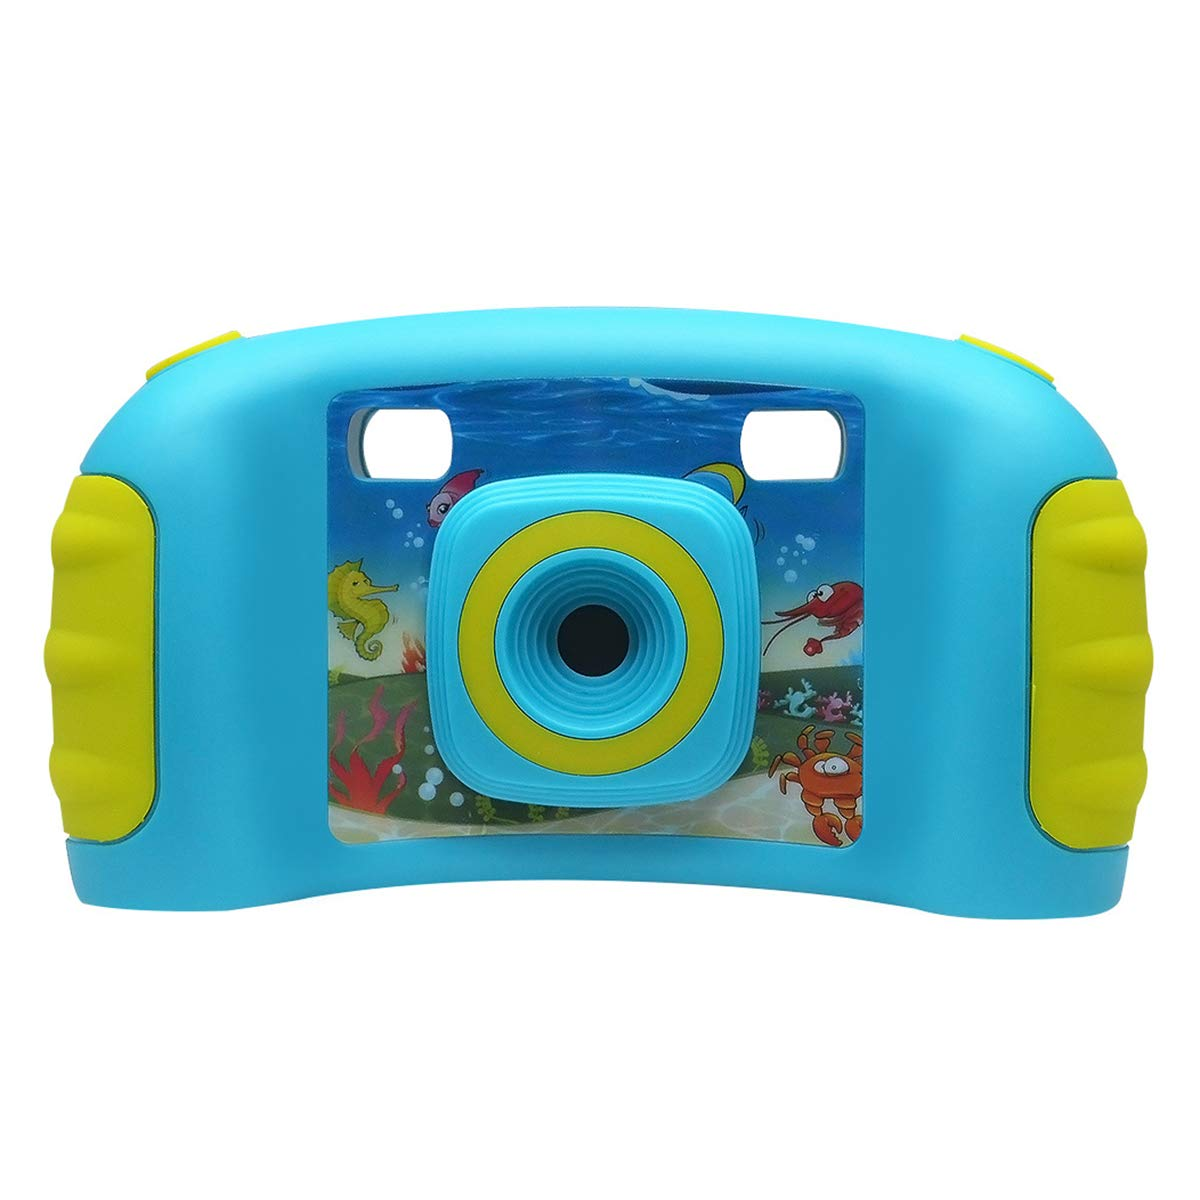 bouti1583 Digital Photo Video Cameras with Games 1.77'' LED Screen for Kids Toy by bouti1583 (Image #1)